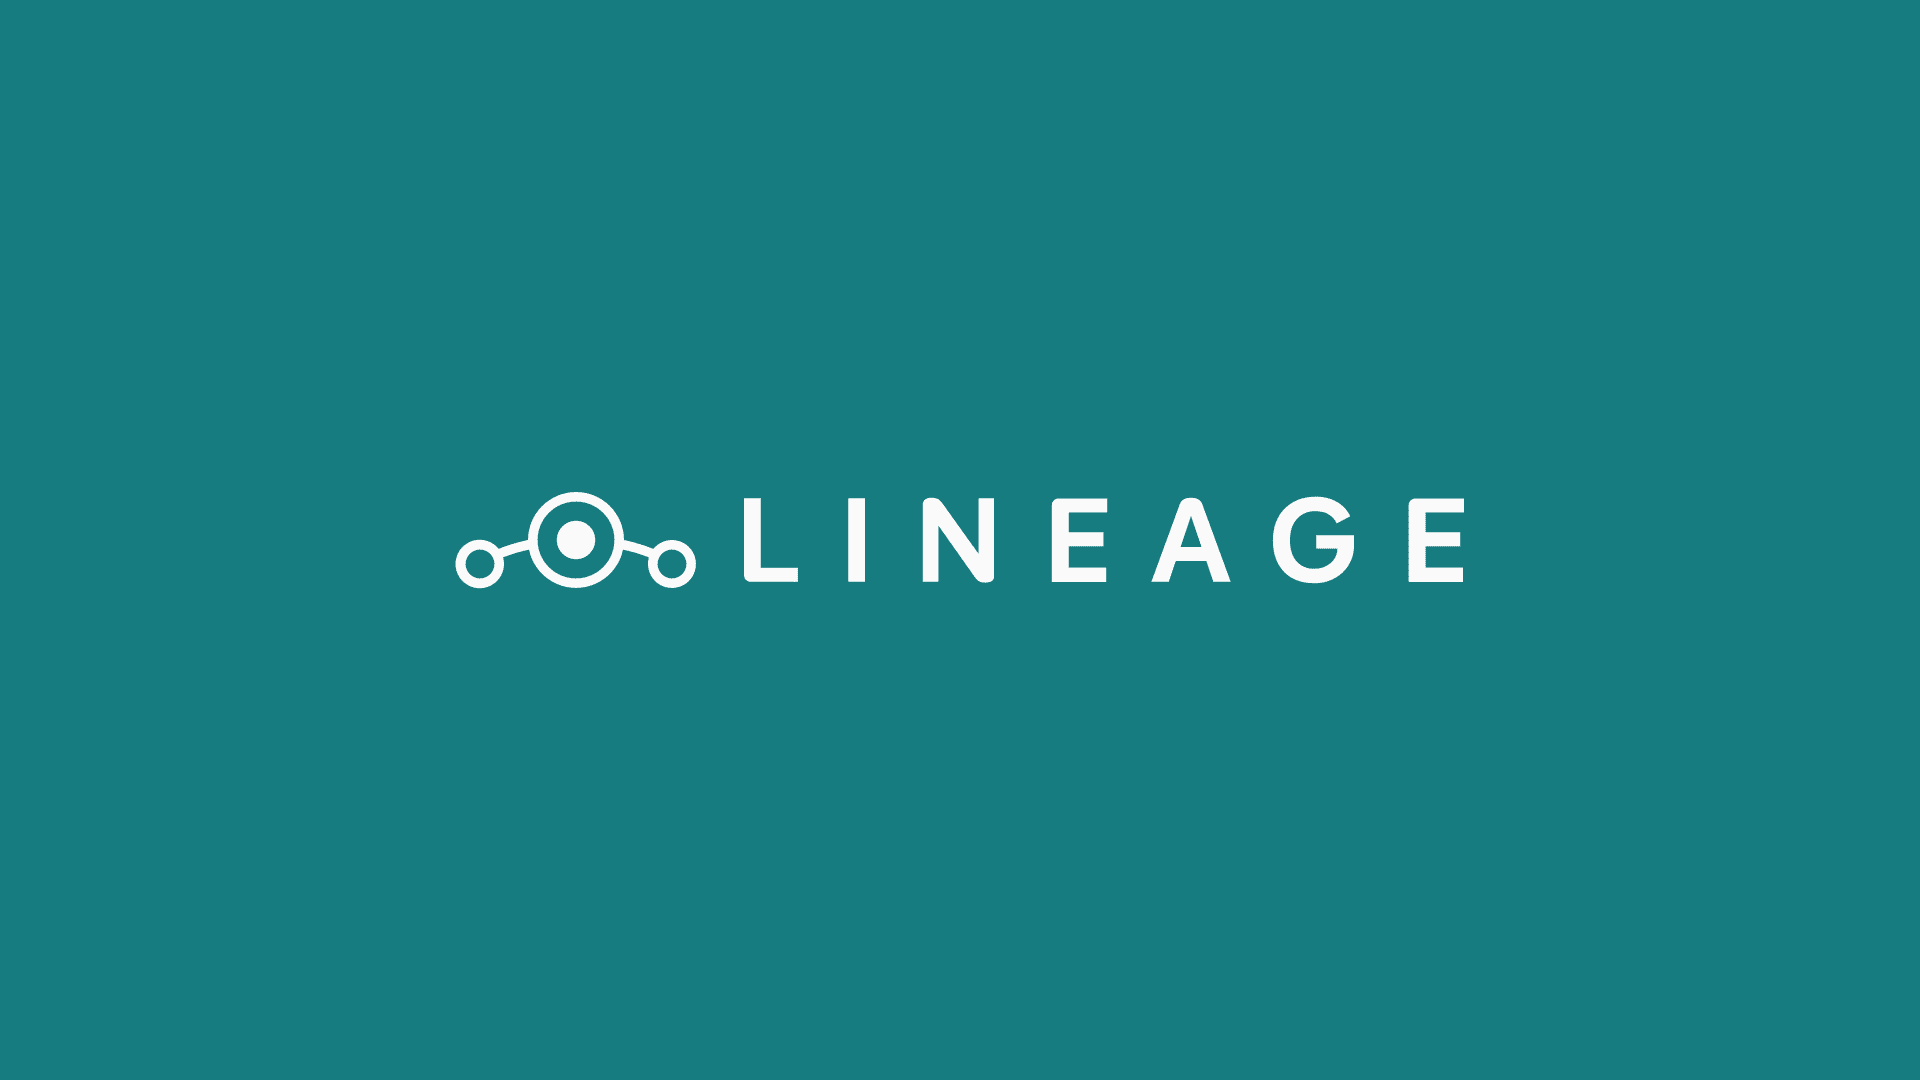 LineageOS 16.0 arrives for HTC One M8 (2014), the only HTC phone with LOS 16